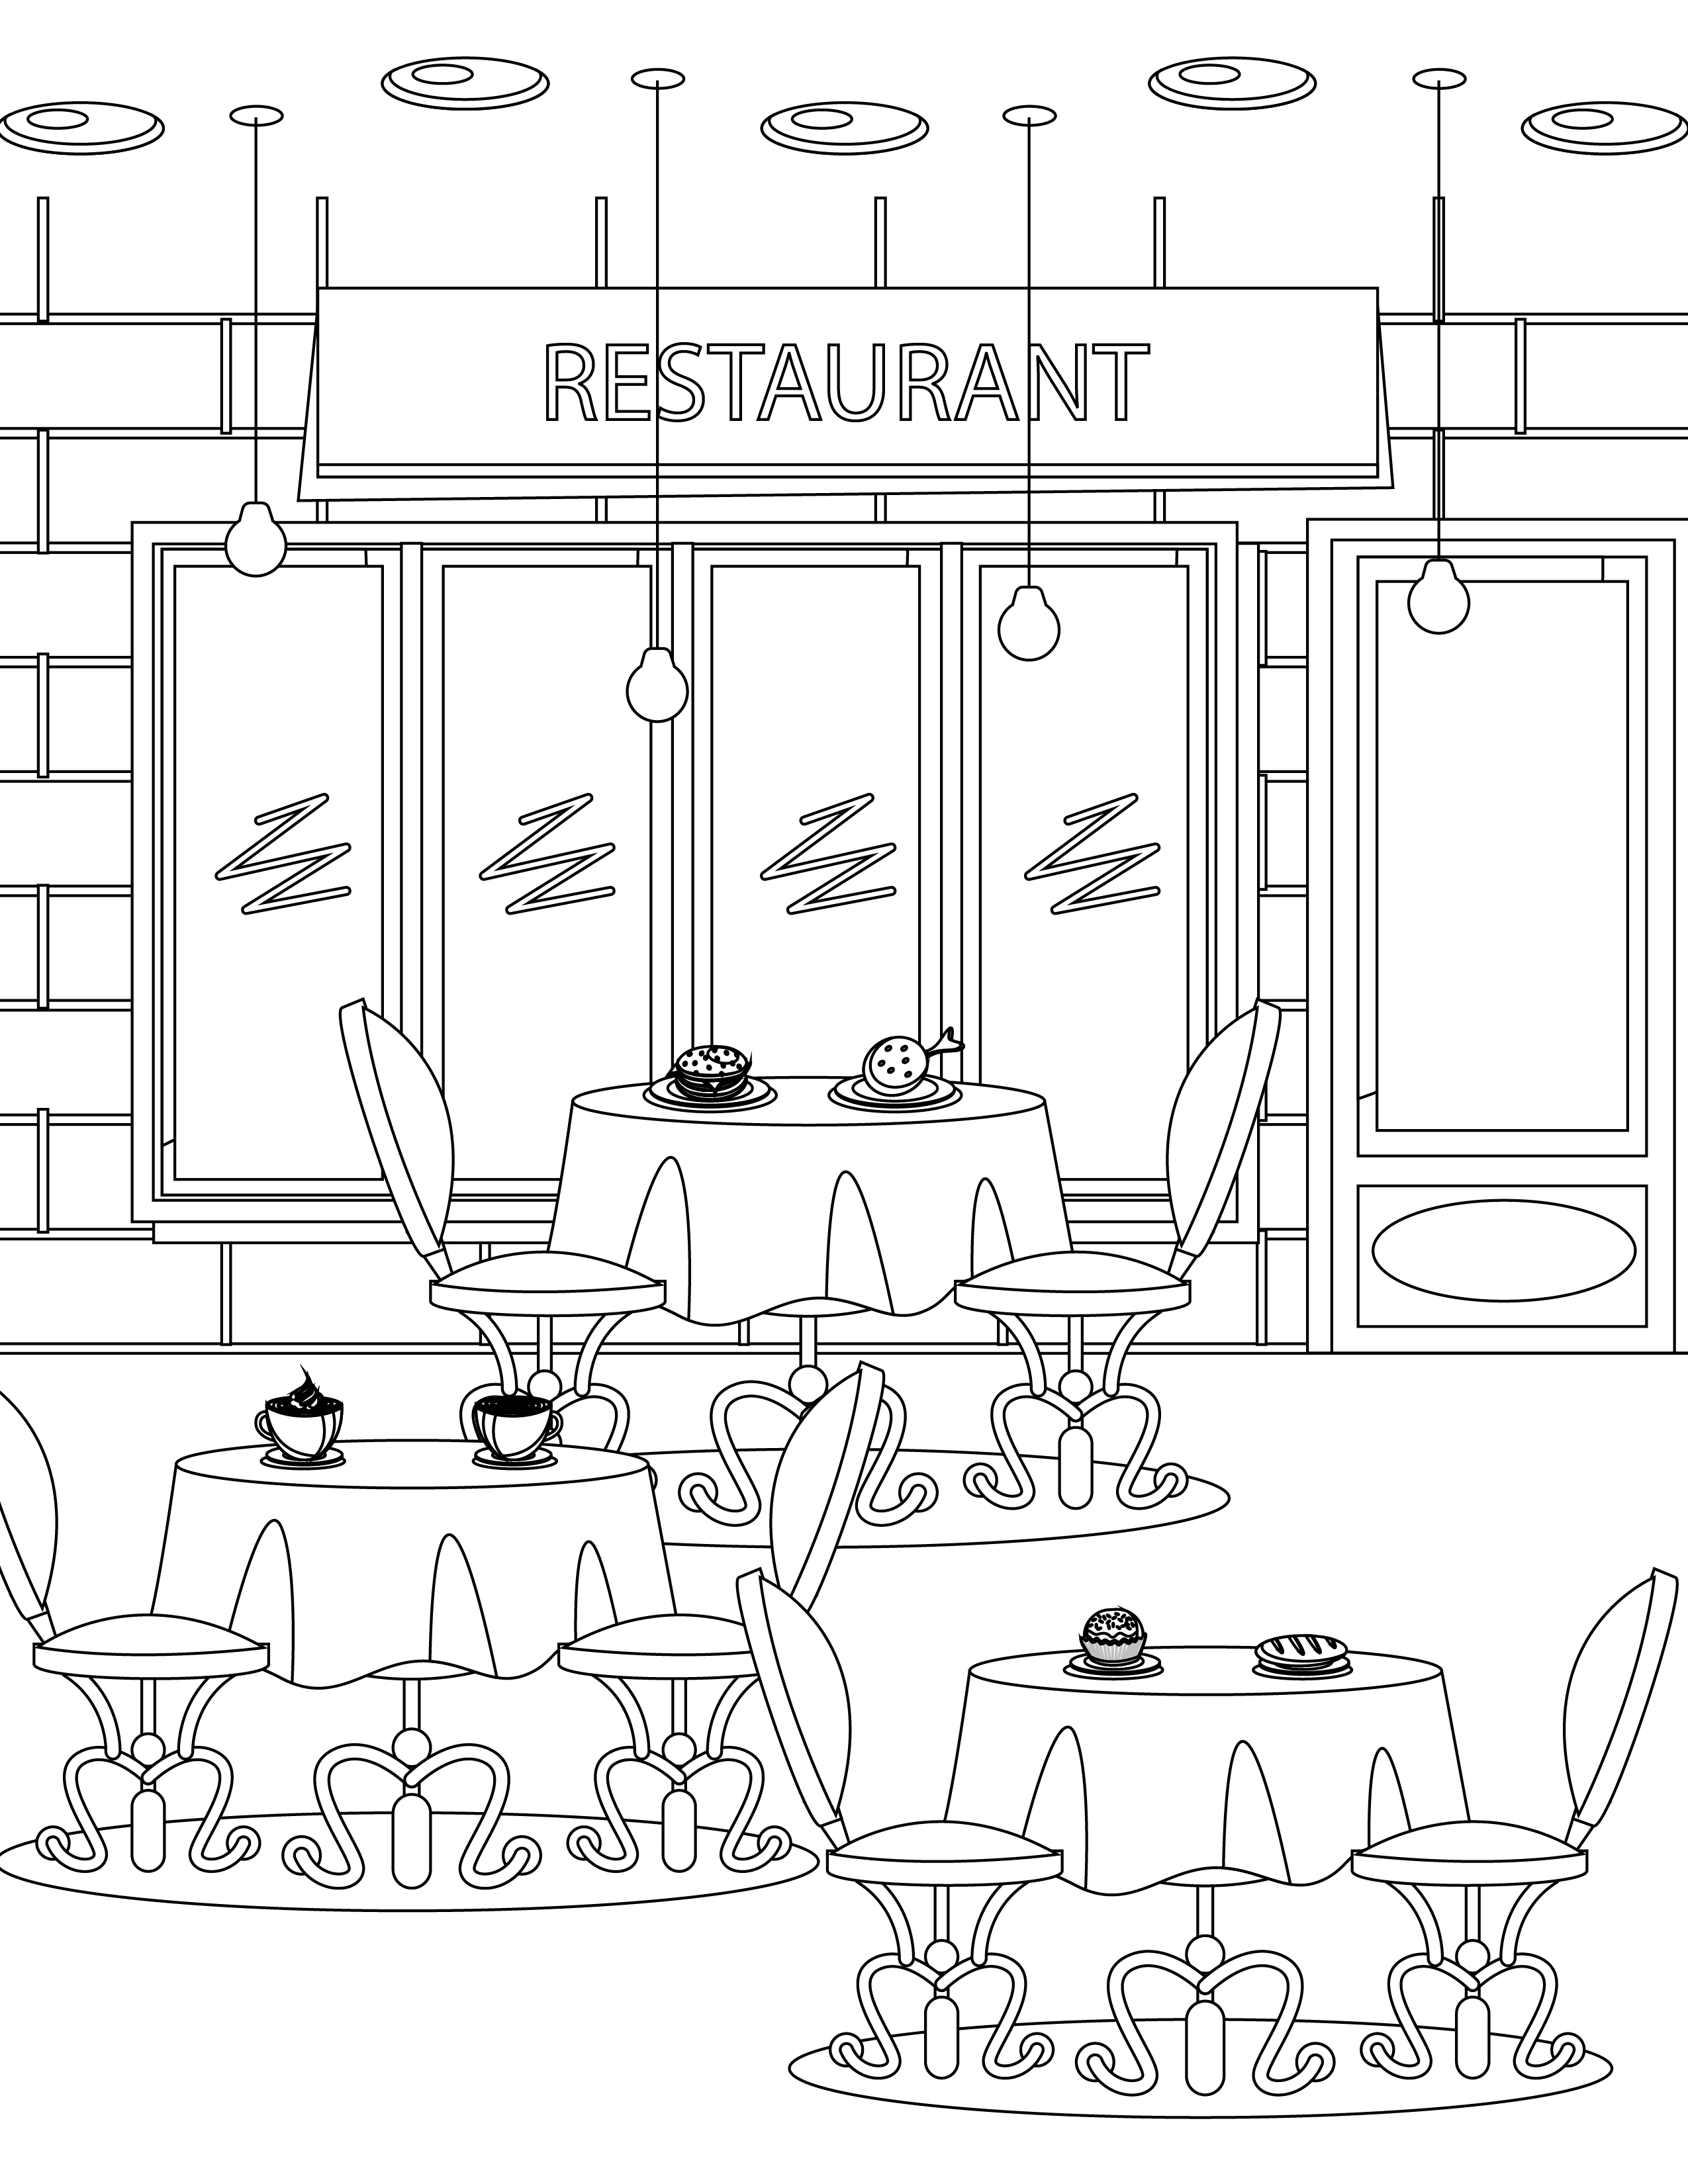 Imprimer Coloriage tous Au Restaurant 2016 to Print Of Coloring Pages for Restaurants to Print Collection